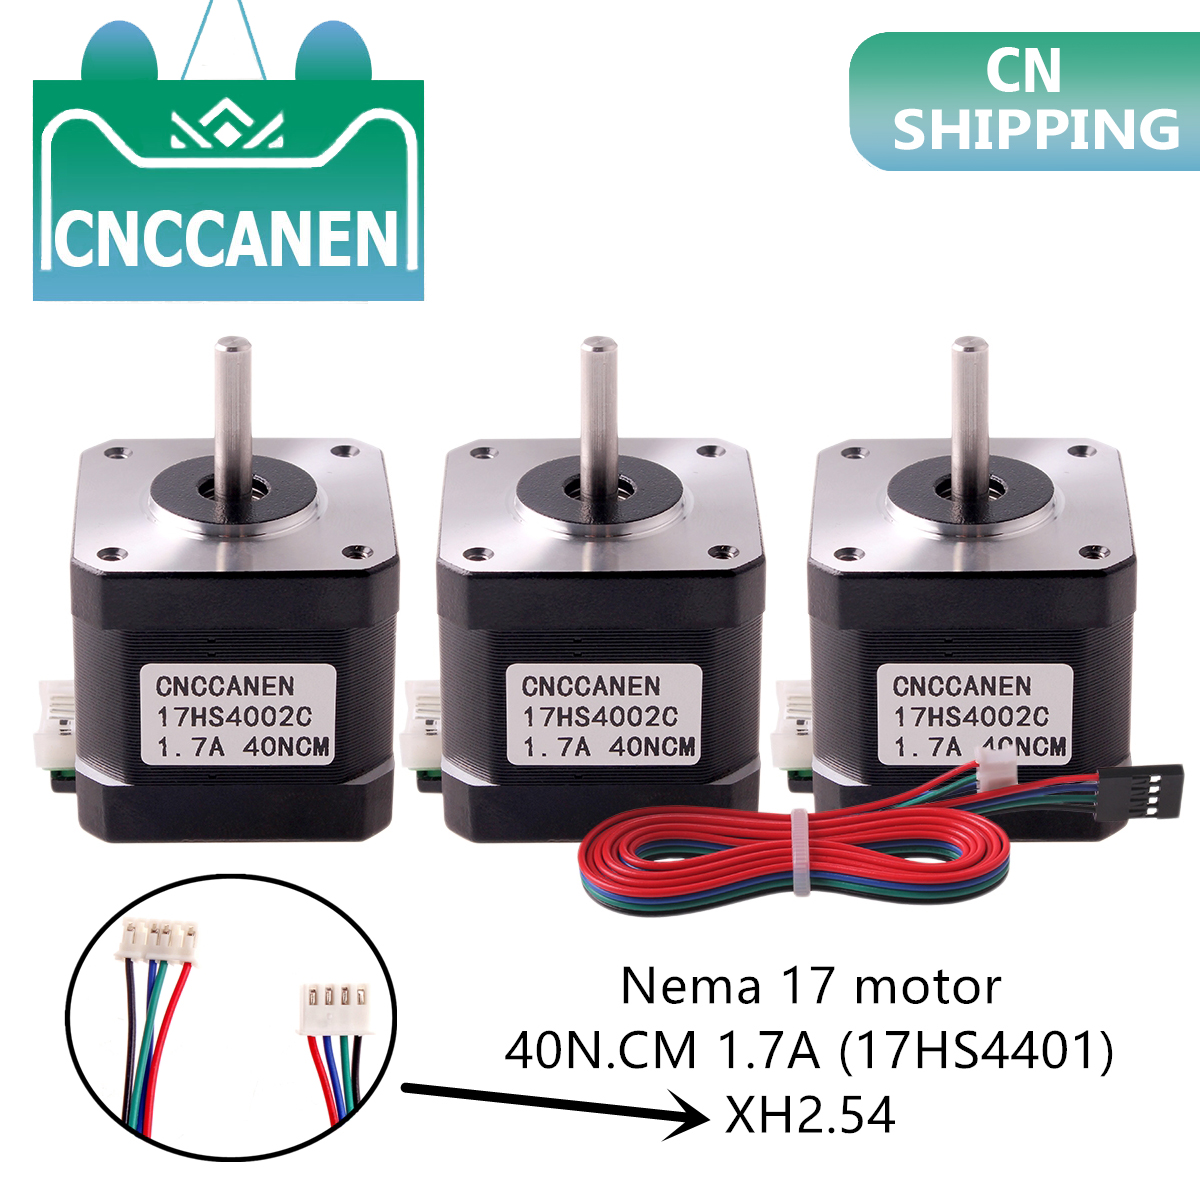 1/3/5PCS Nema17 Stepper Motor 42 Motor Nema 17 Motor 40mm 1.7A (17HS4401) Motor 4-lead For 3D Printer XH2.54